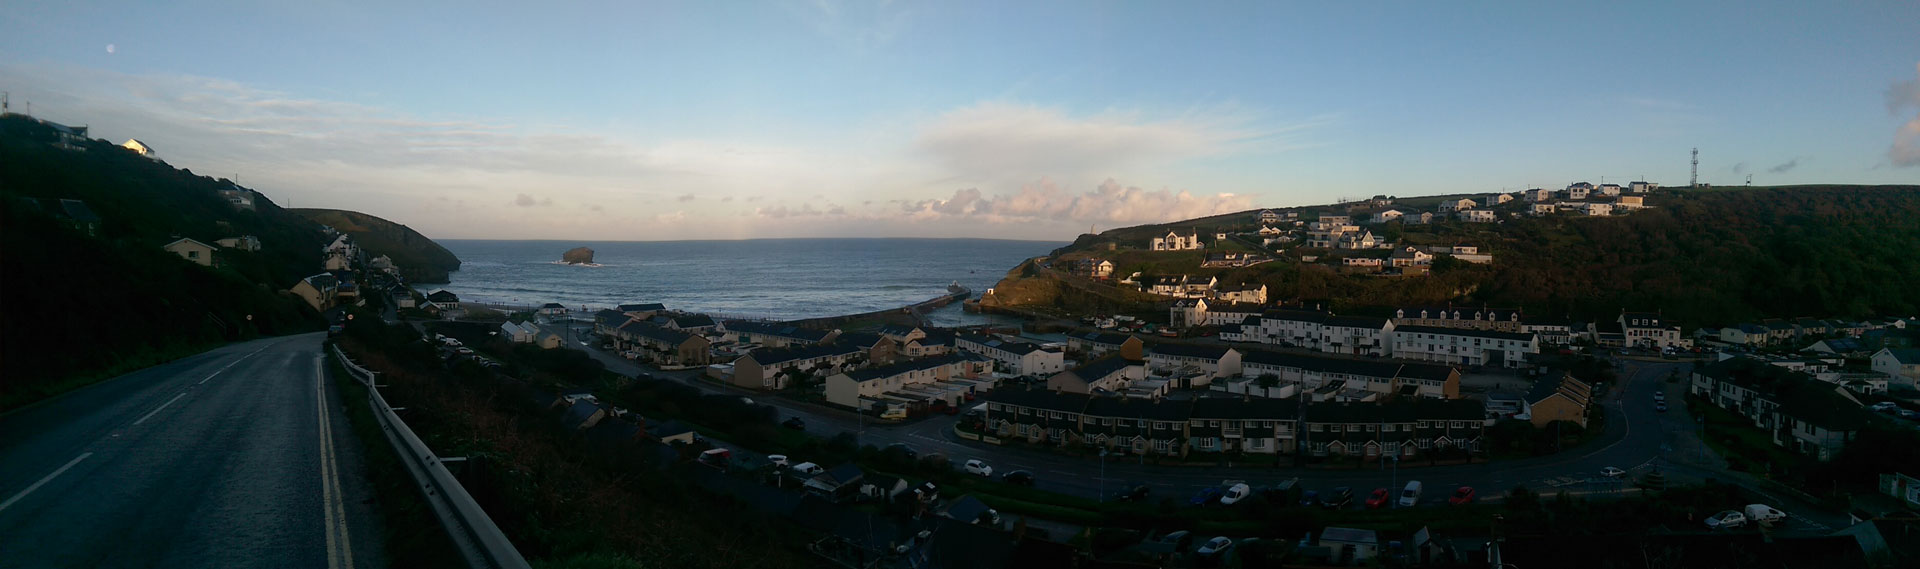 Panorama over Portreath village at sunset